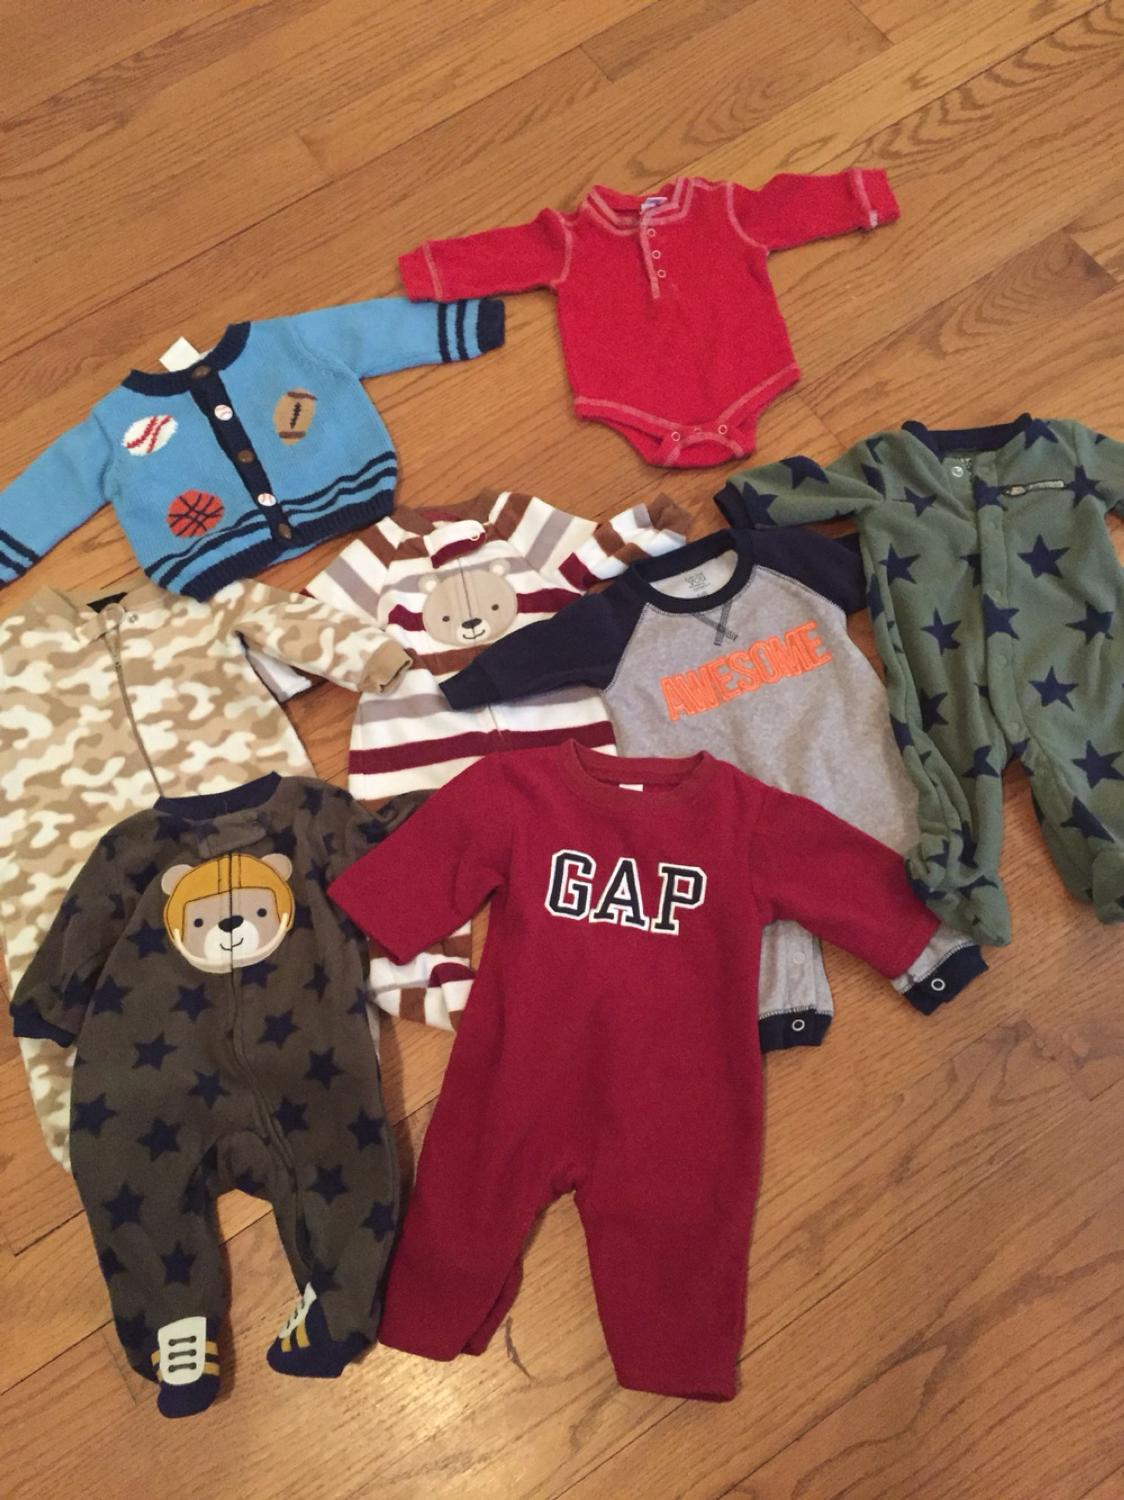 0c0a2dcf1 Find more Newborn Winter Sleepers/onesies for sale at up to 90% off